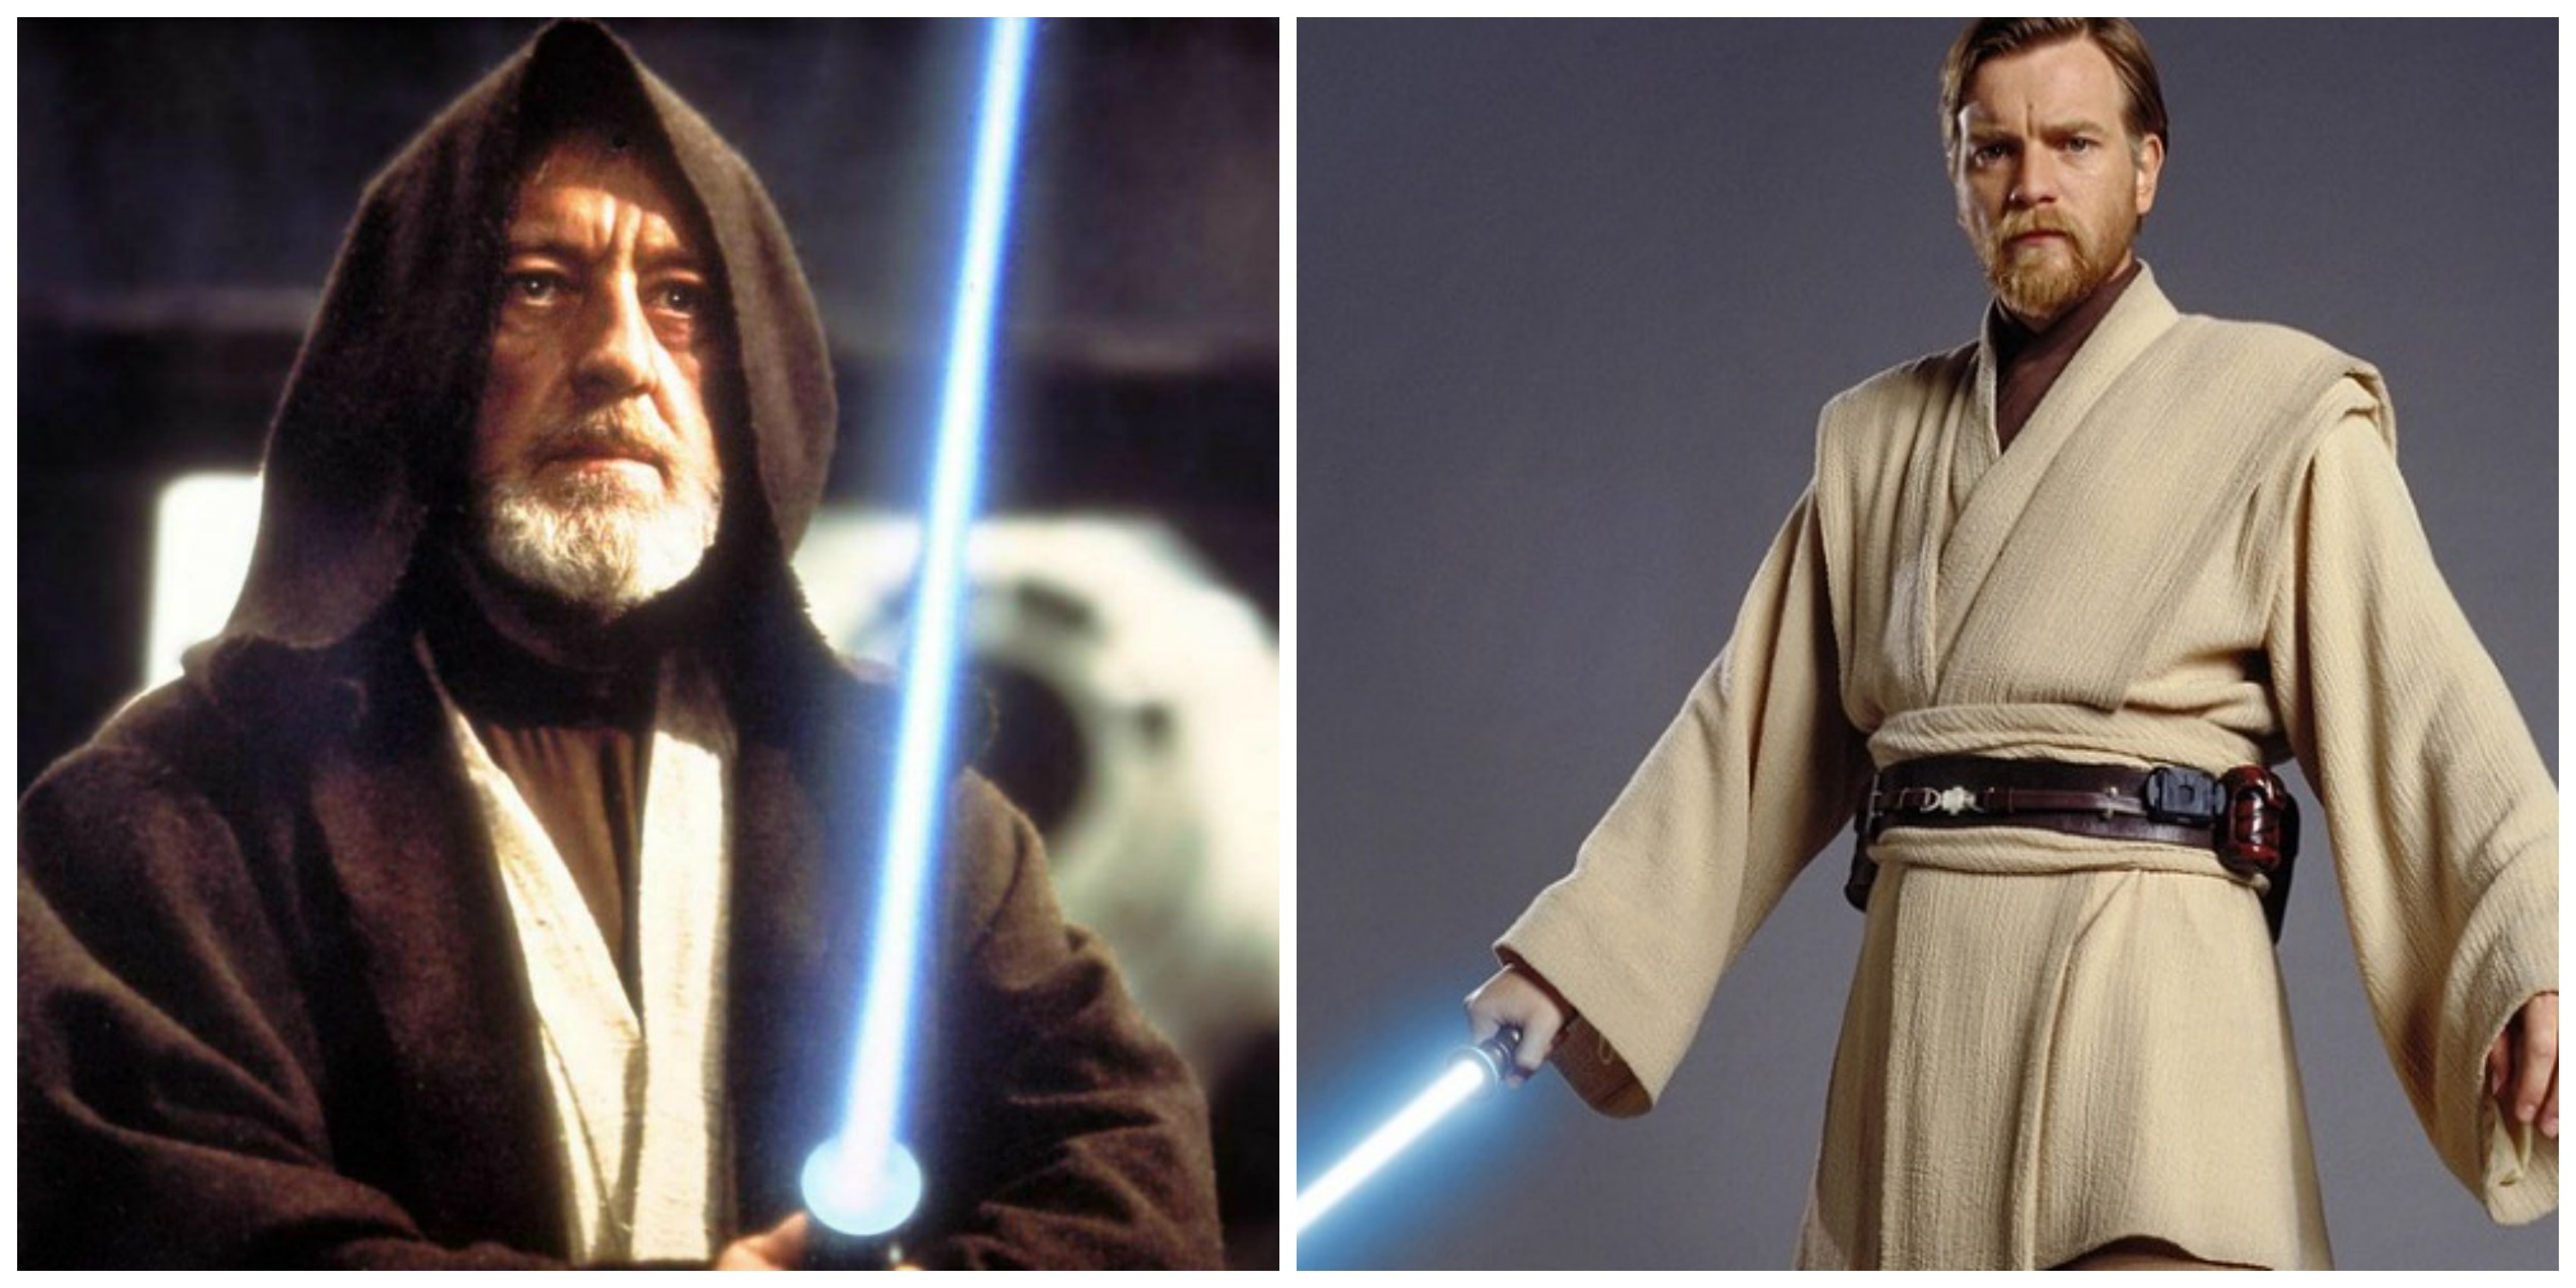 Obi-Wan Standalone Movie Officially In The Works At Lucasfilm